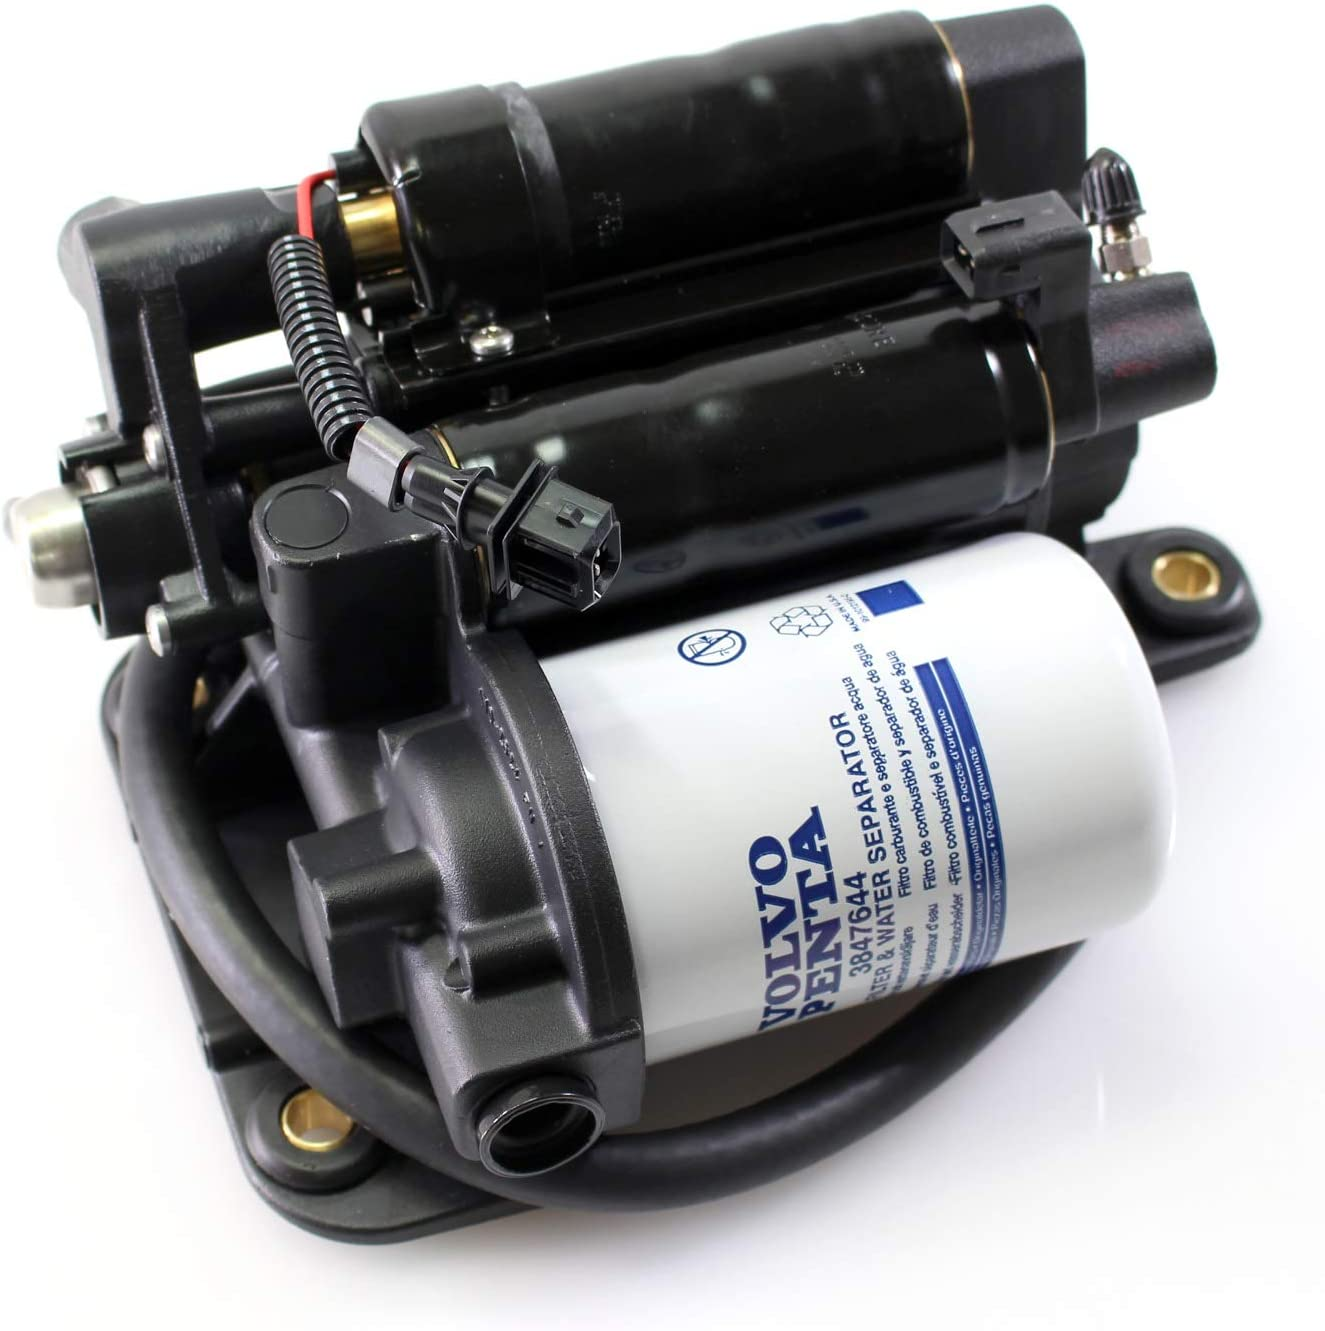 NEW Stern Drive High Pressure Fuel Pump Assembly for 8.1L Volvo Penta 21608512